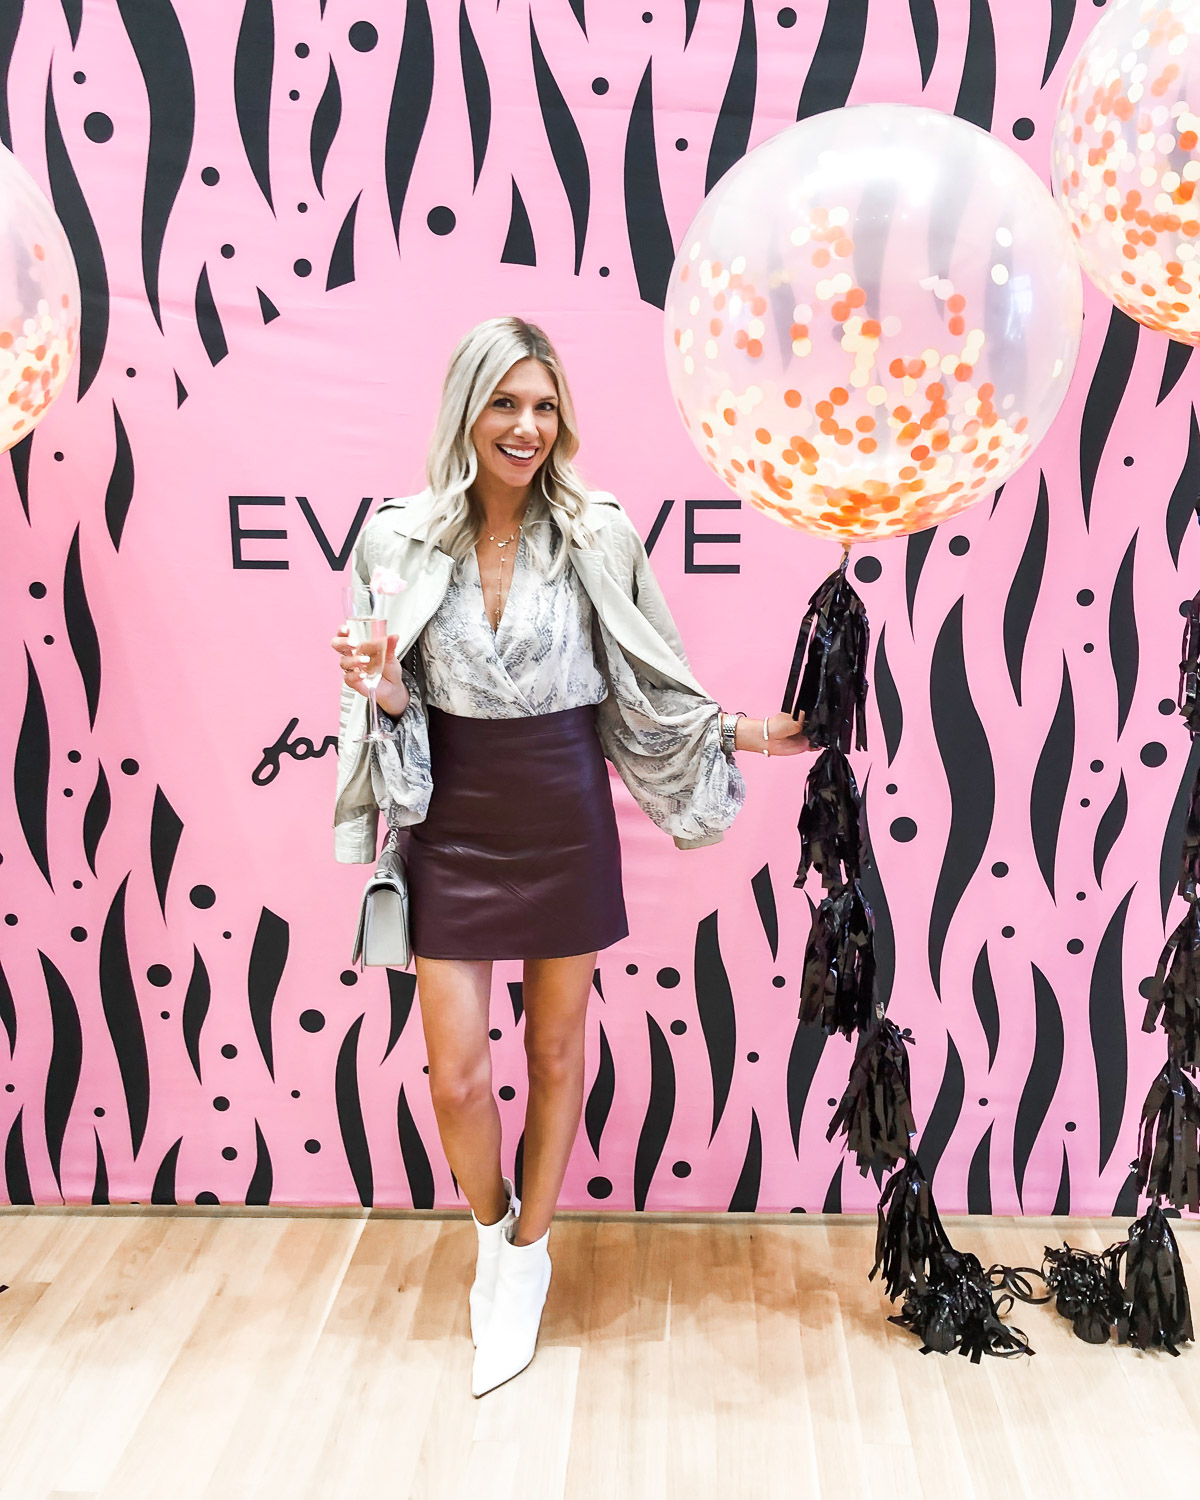 evereve x 7 or all mankind event